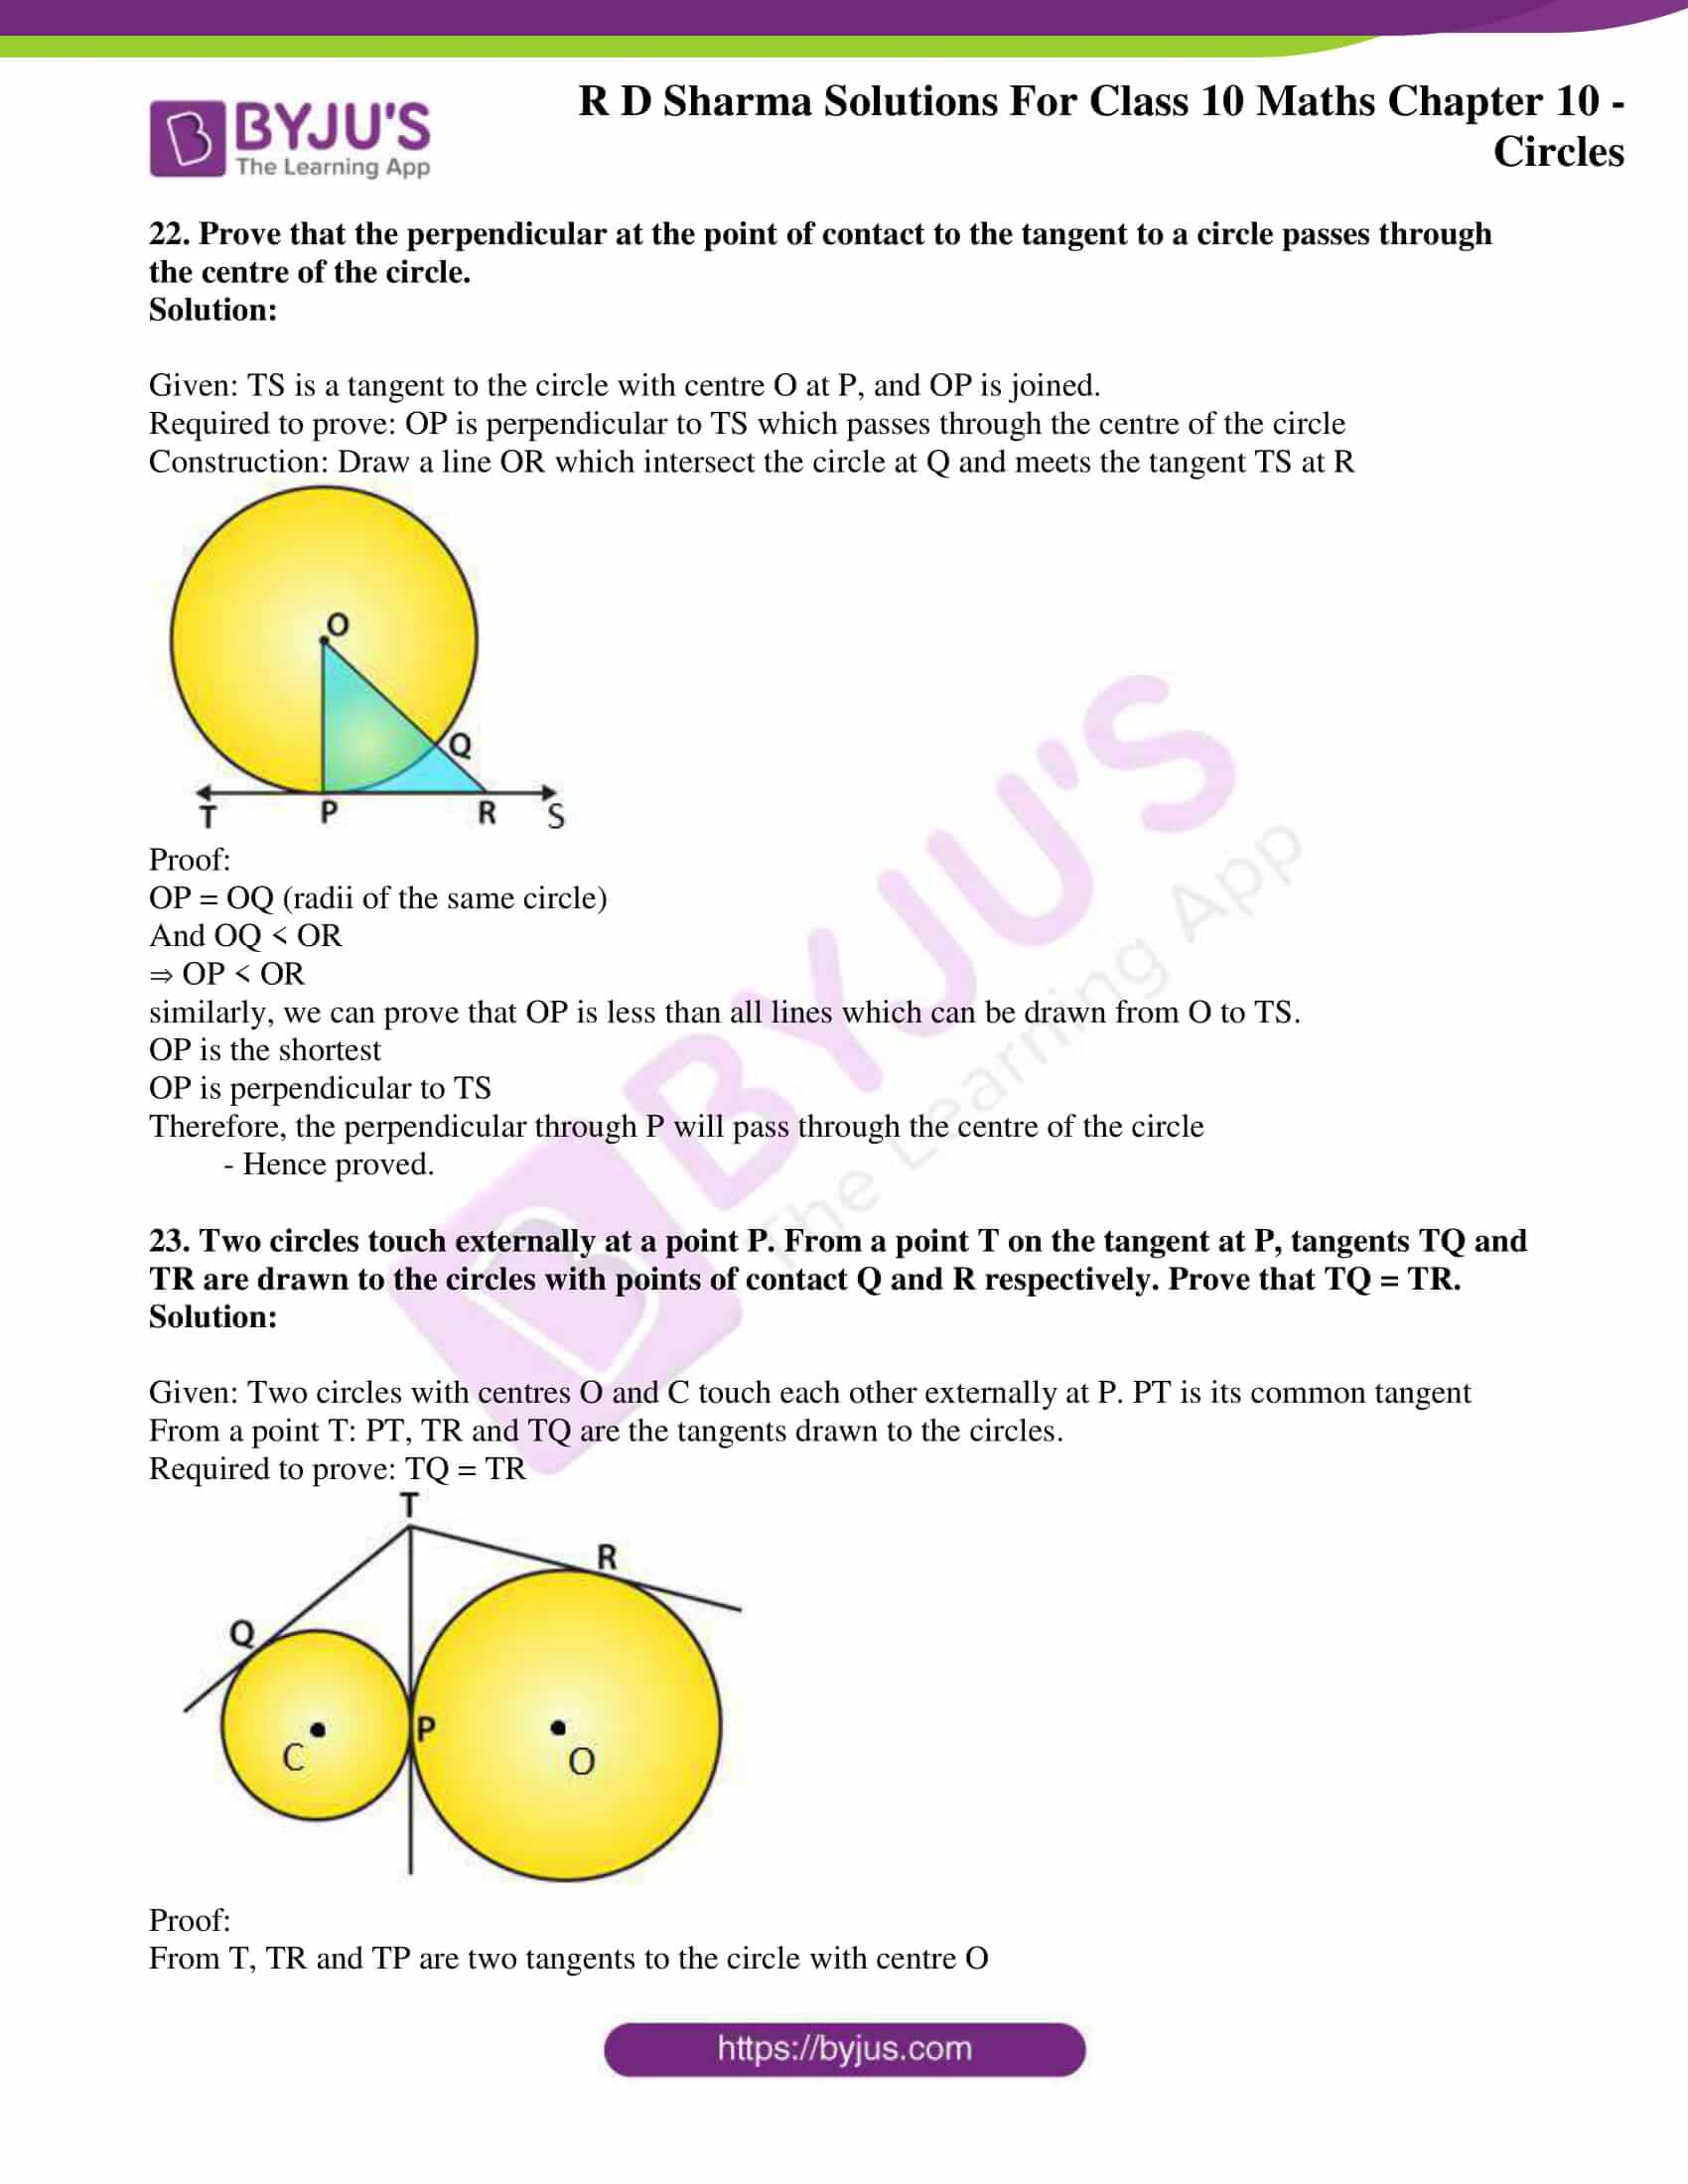 rd sharma class 10 chapter 10 circles solutions exercise 2 16